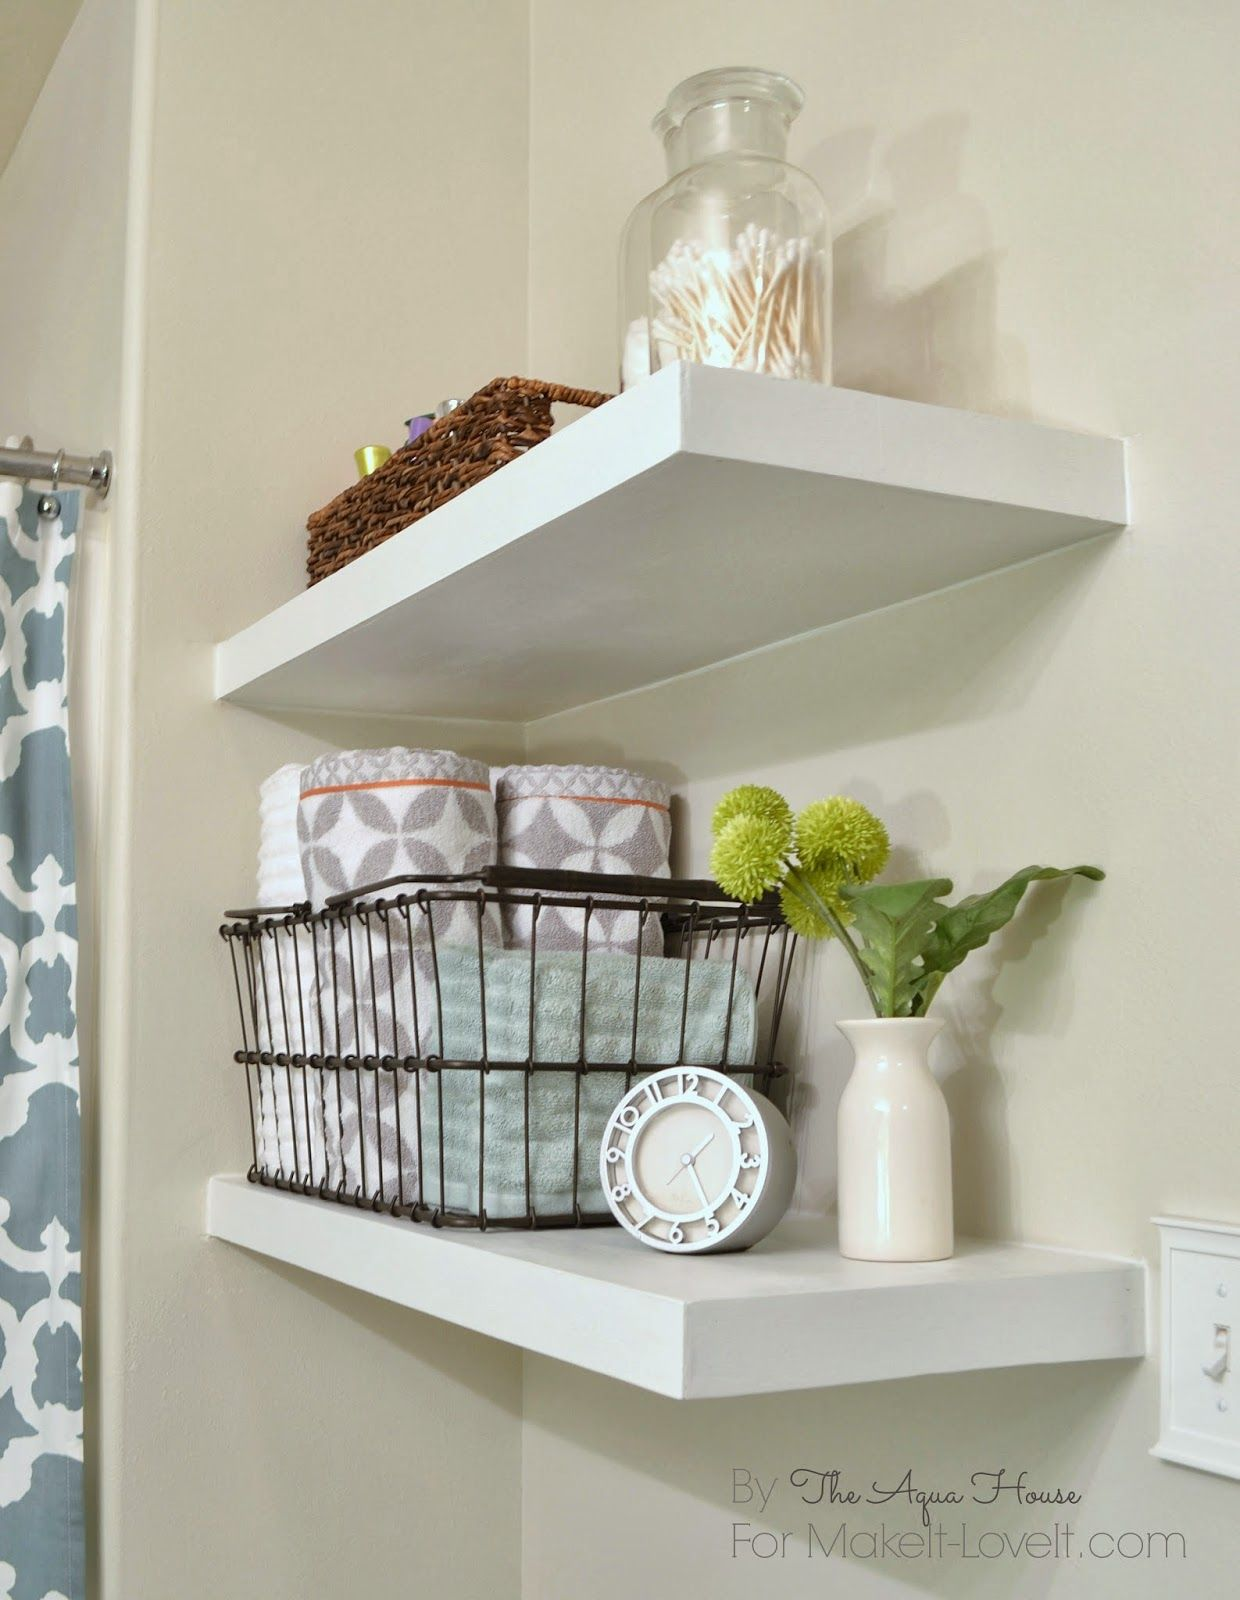 diy floating shelves great storage solution crafts bathroom make and love ideas for clothes frosted glass shelf tall computer desk with ikea dressing table wire brackets canadian